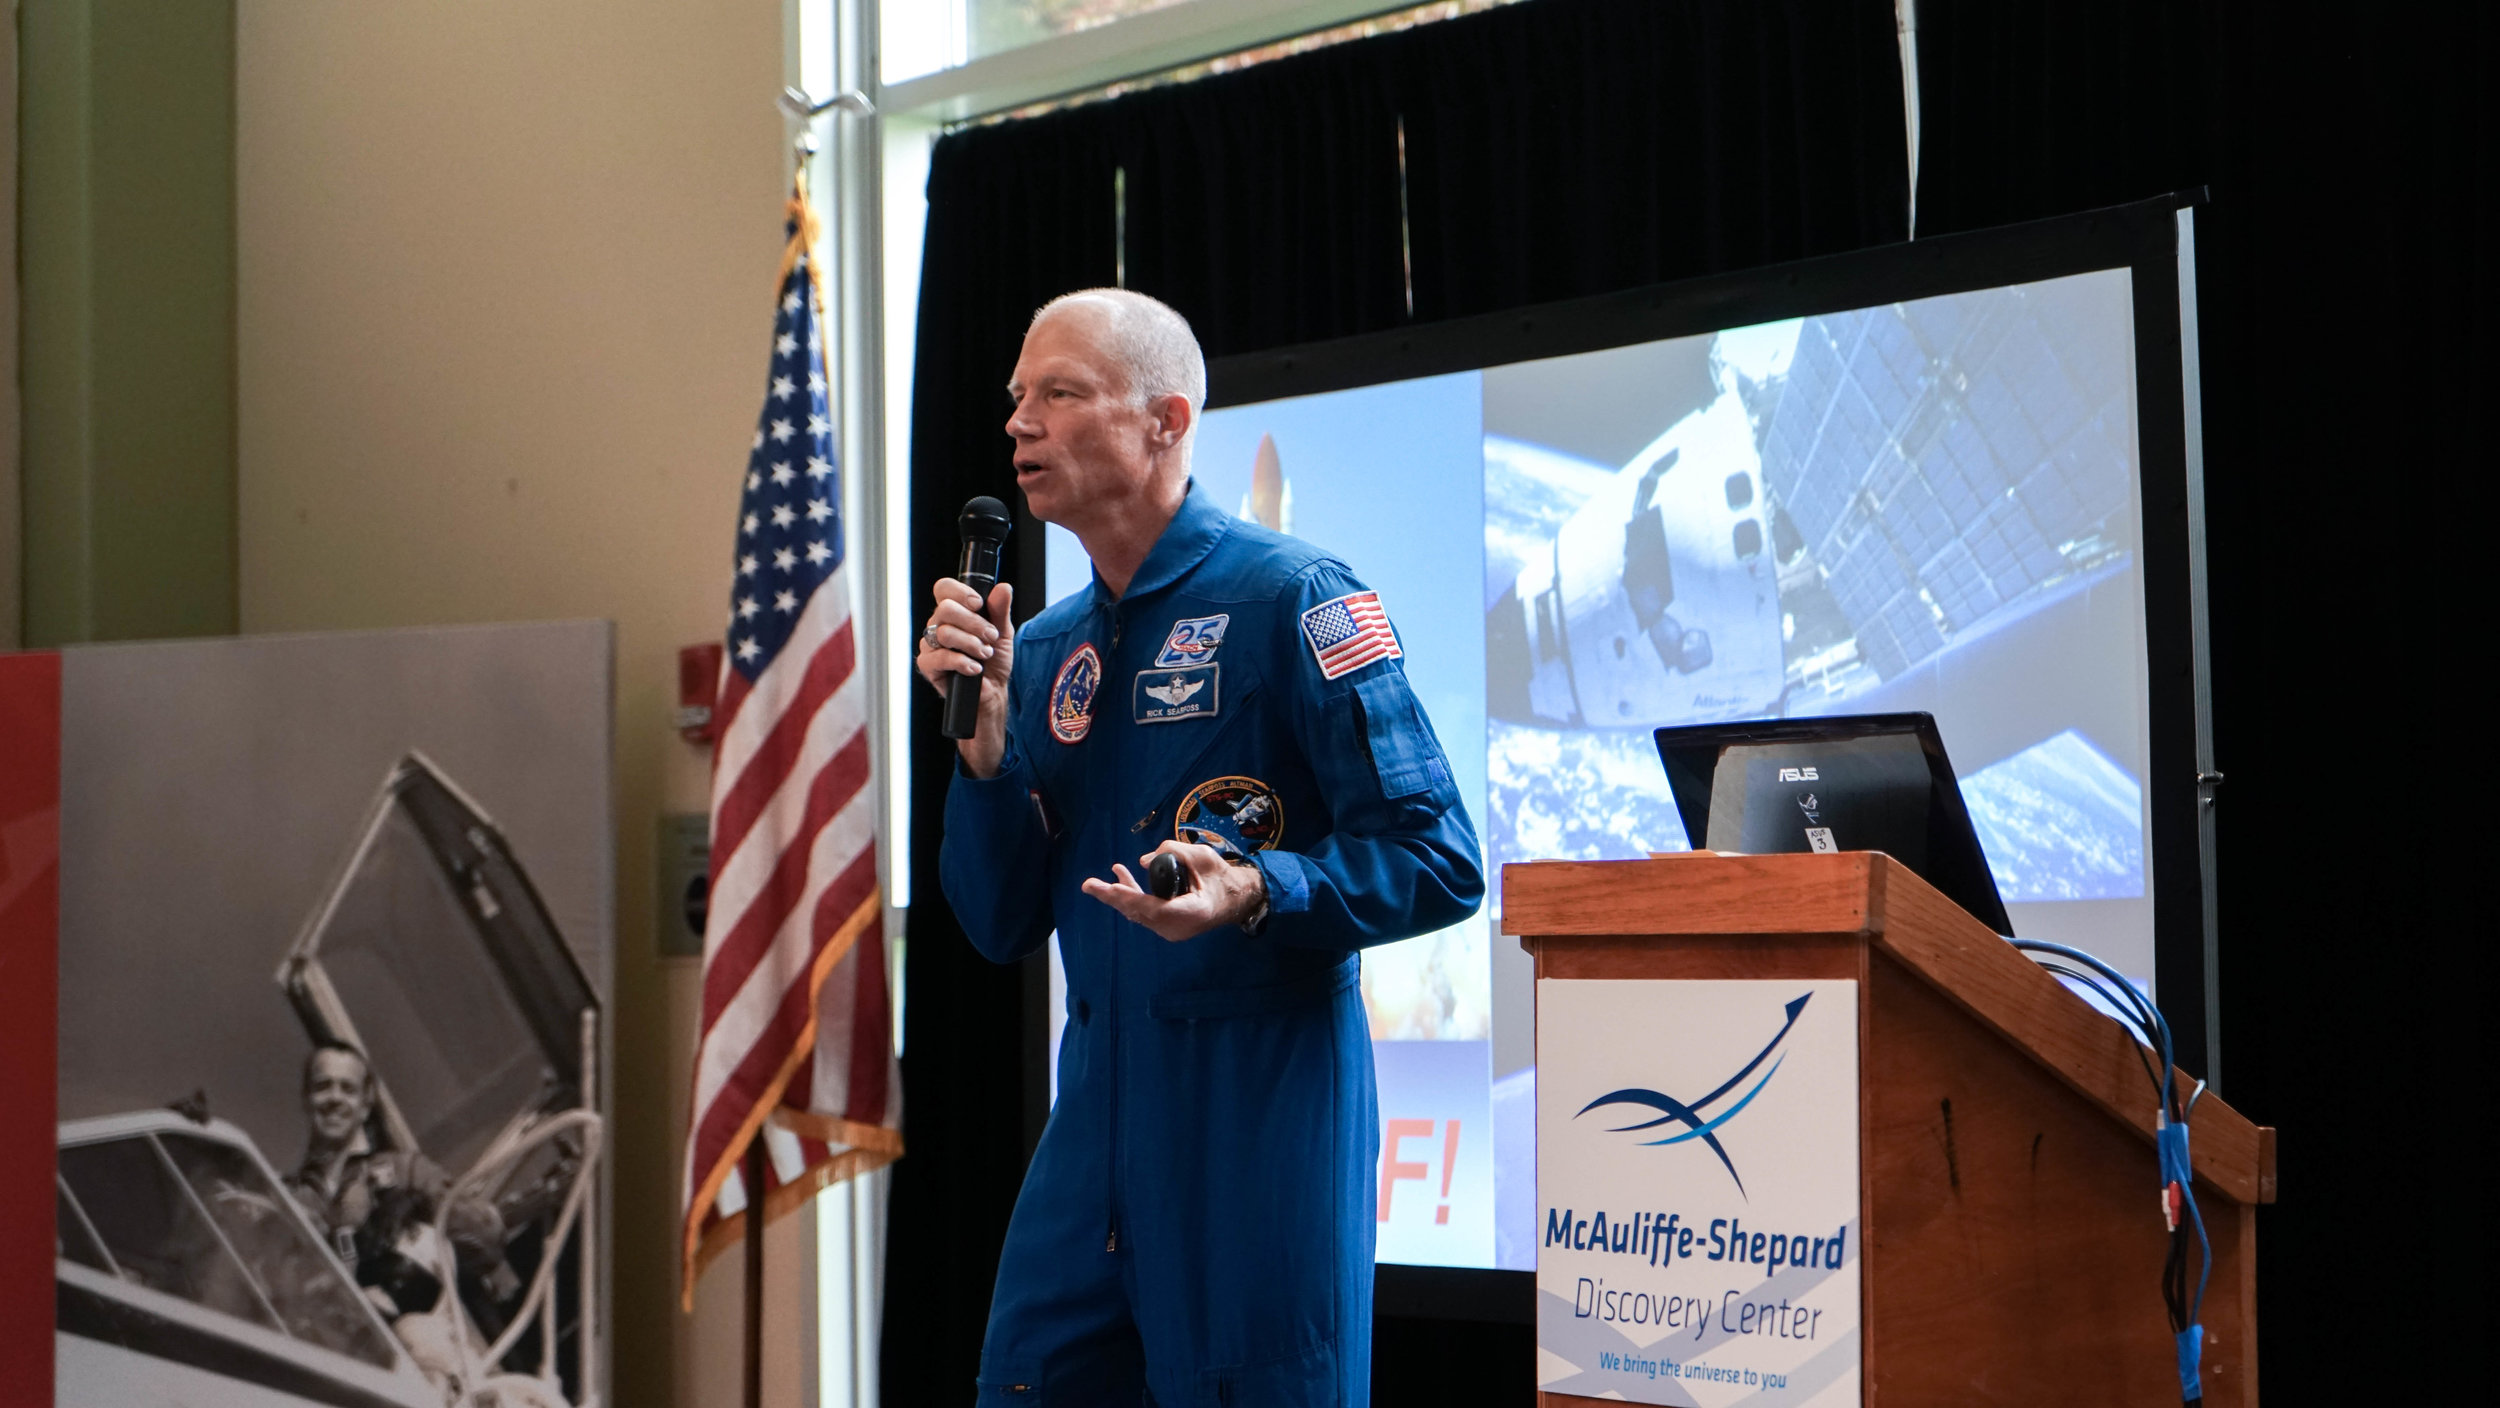 Col. Rick Searfoss at MSDC - Aerospacefest 2017.jpg